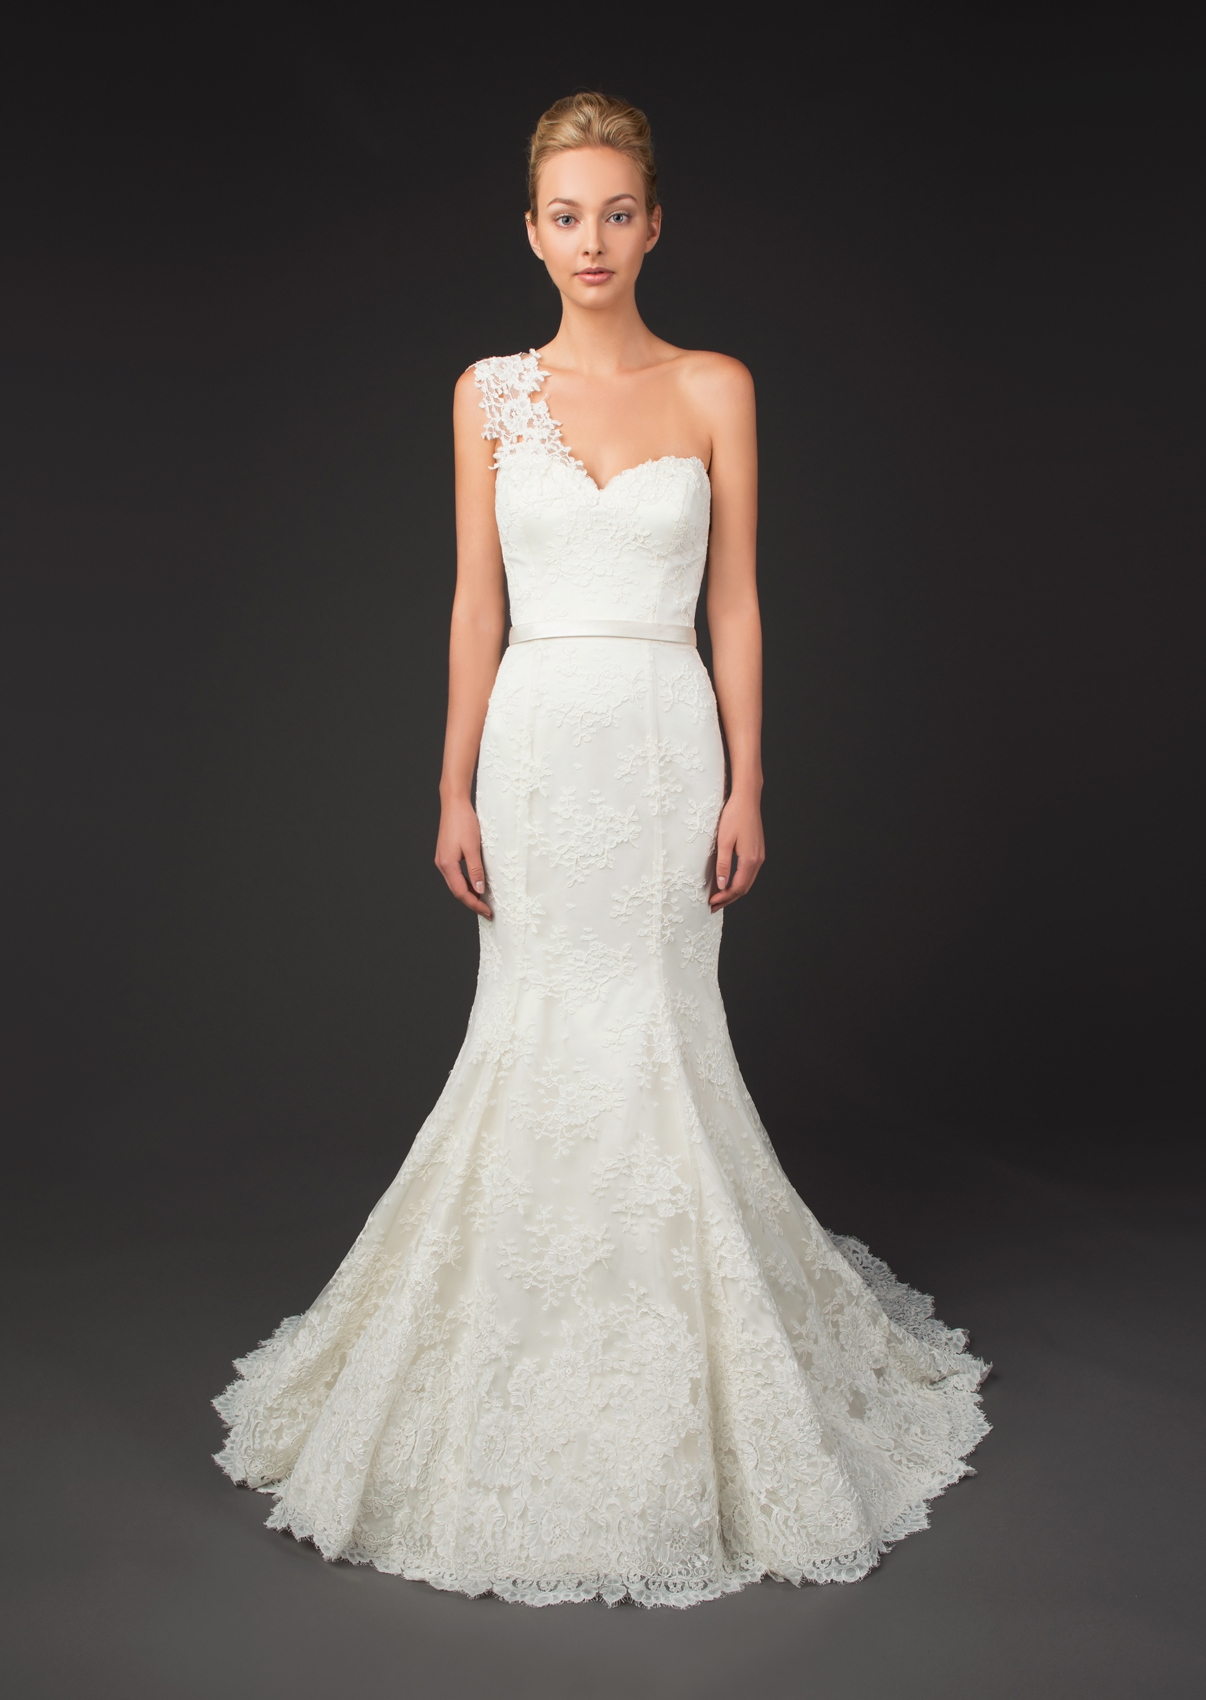 winnie-couture-wedding-dresses-fall-2014-diamond-label-collection-17-01202014